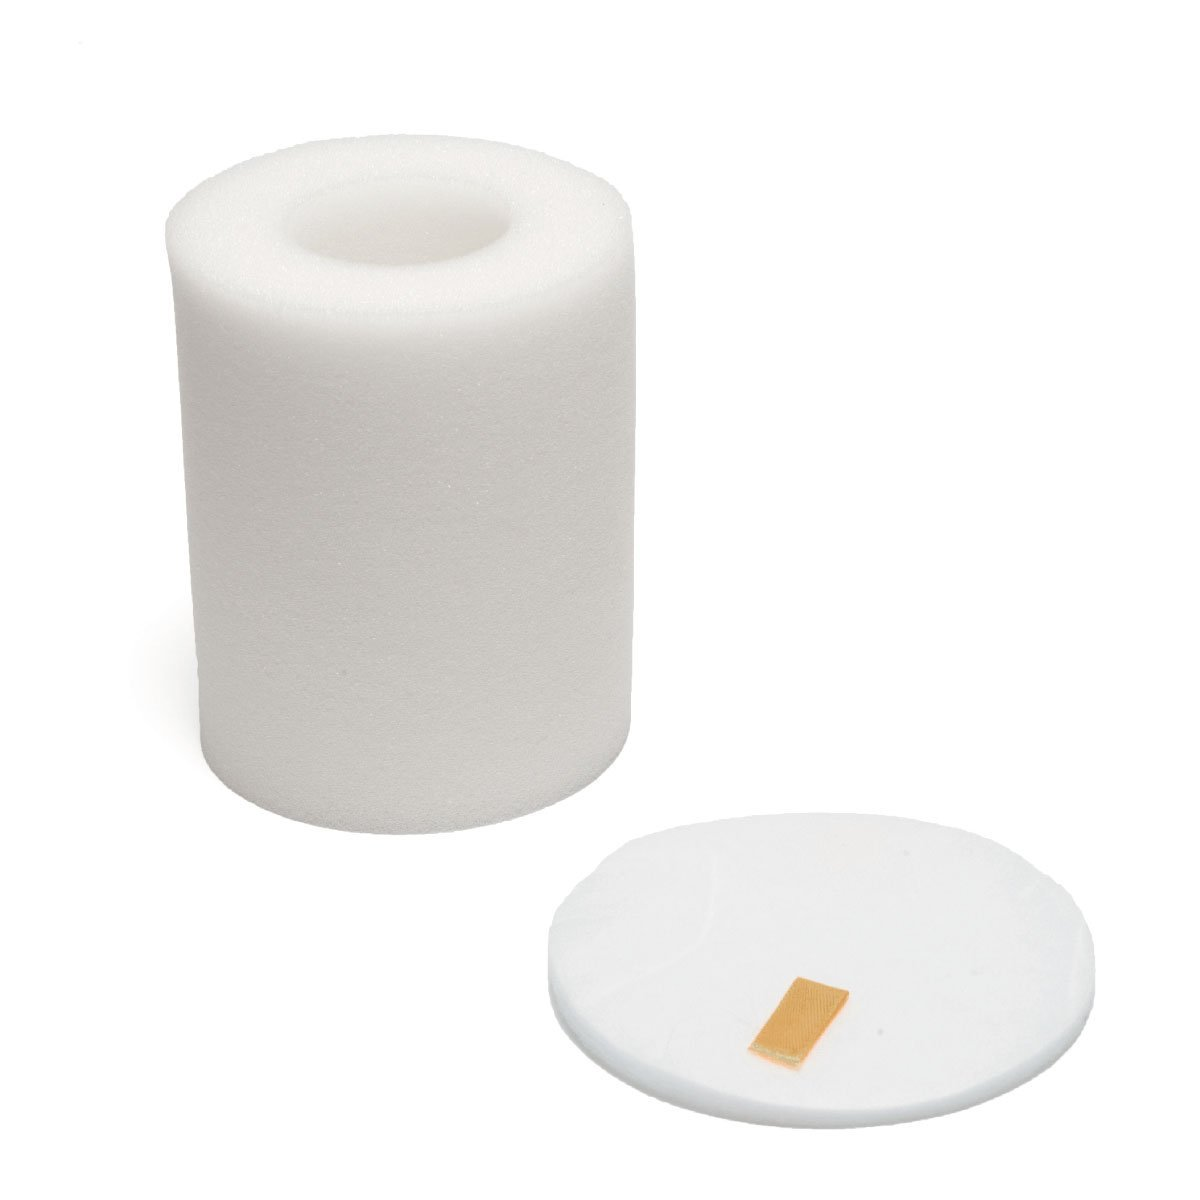 For use with SV780 SV75 SV75Z SV66 /& other Shark Hand Vacs by DVC Products Filter # XSB726N Shark Dust Cup Filter 3 Pack